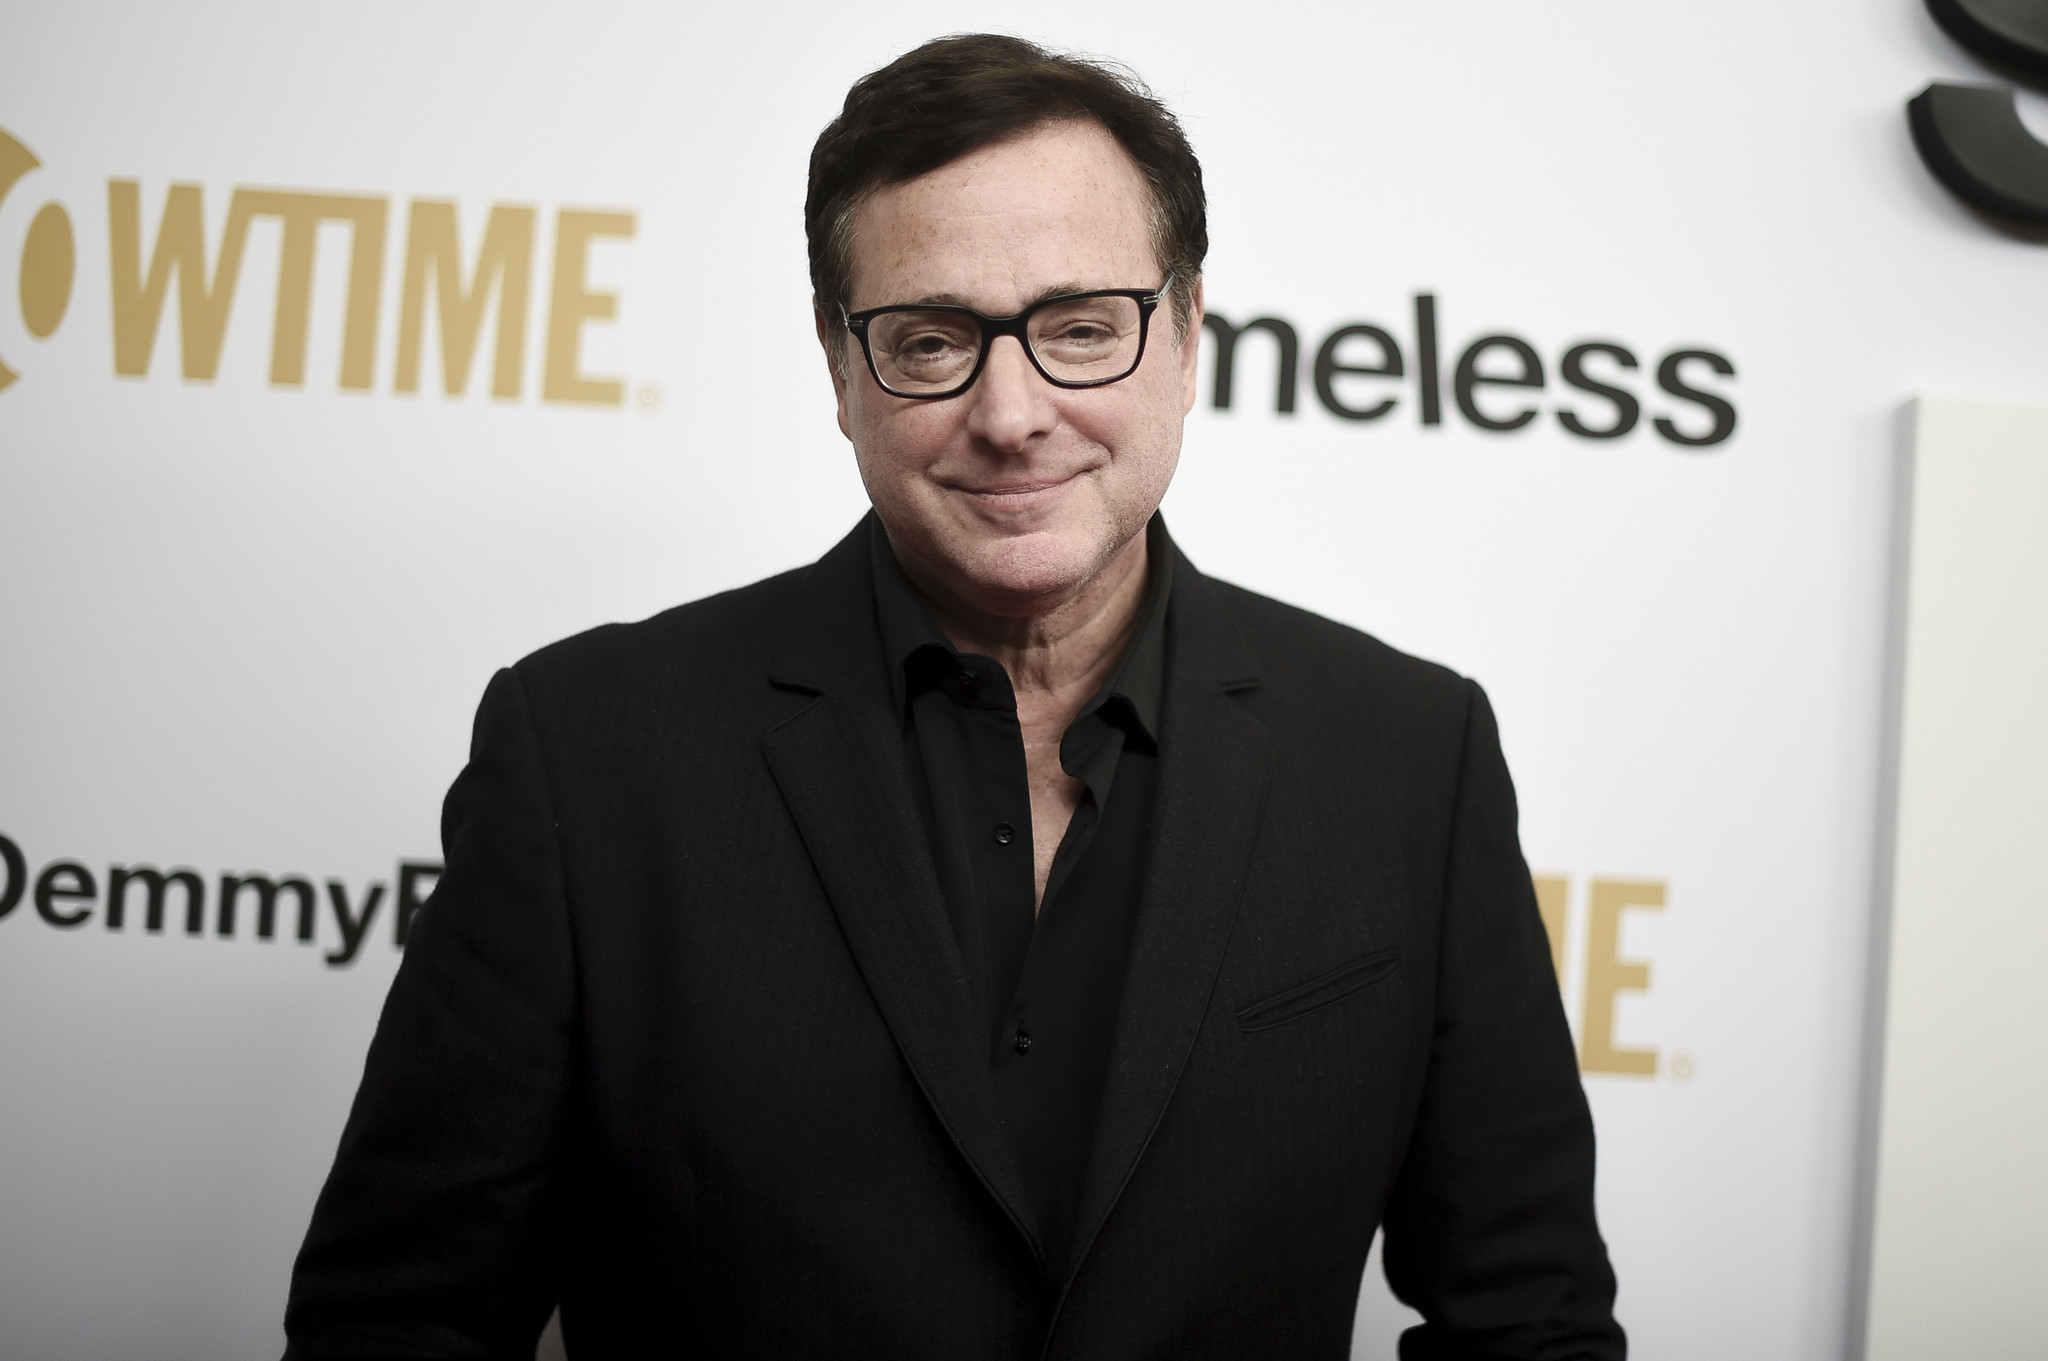 'Full House' star Bob Saget jokes he's turning into Danny Tanner